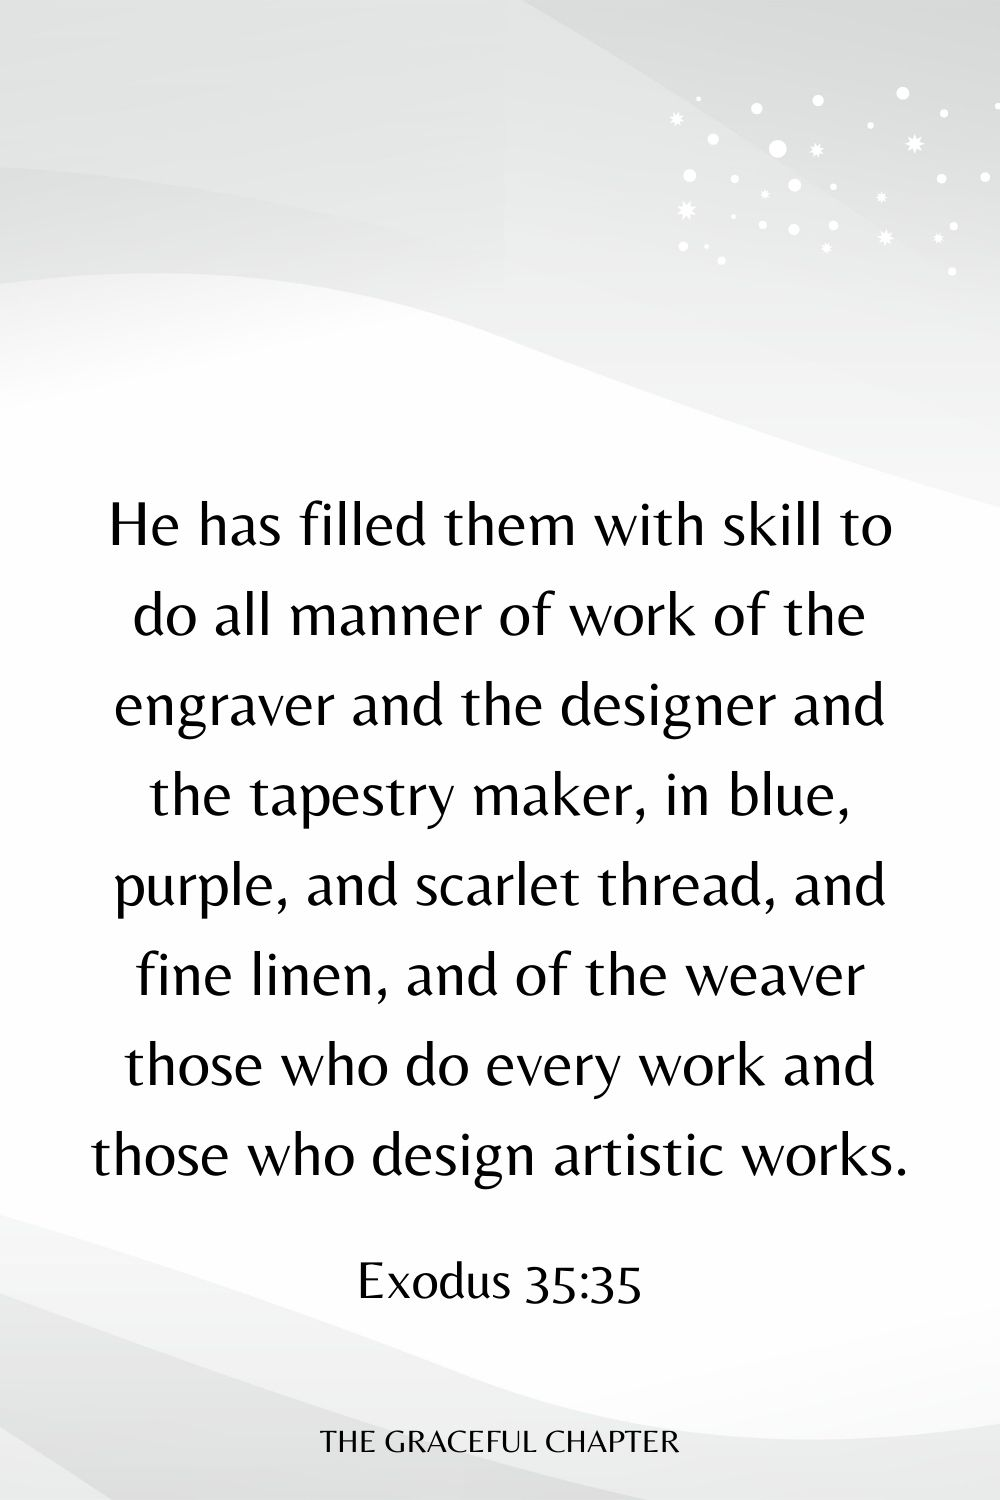 He has filled them with skill to do all manner of work of the engraver and the designer and the tapestry maker, in blue, purple, and scarlet thread, and fine linen, and of the weaver those who do every work and those who design artistic works. Exodus 35:35